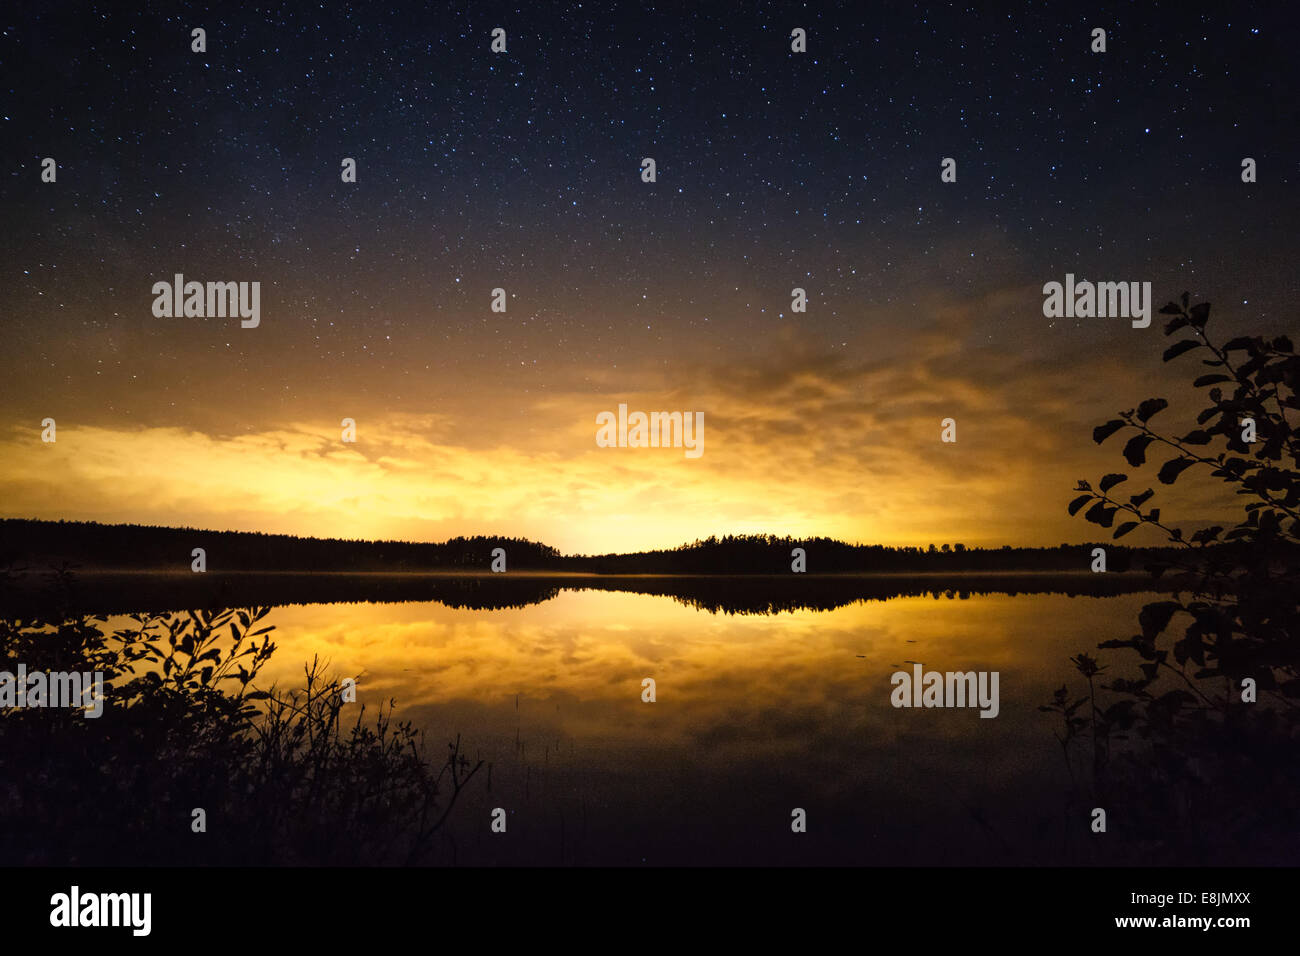 Stars over the sunset scene in Finland. Reflections of the forest skyline in the calm water of a lake. - Stock Image